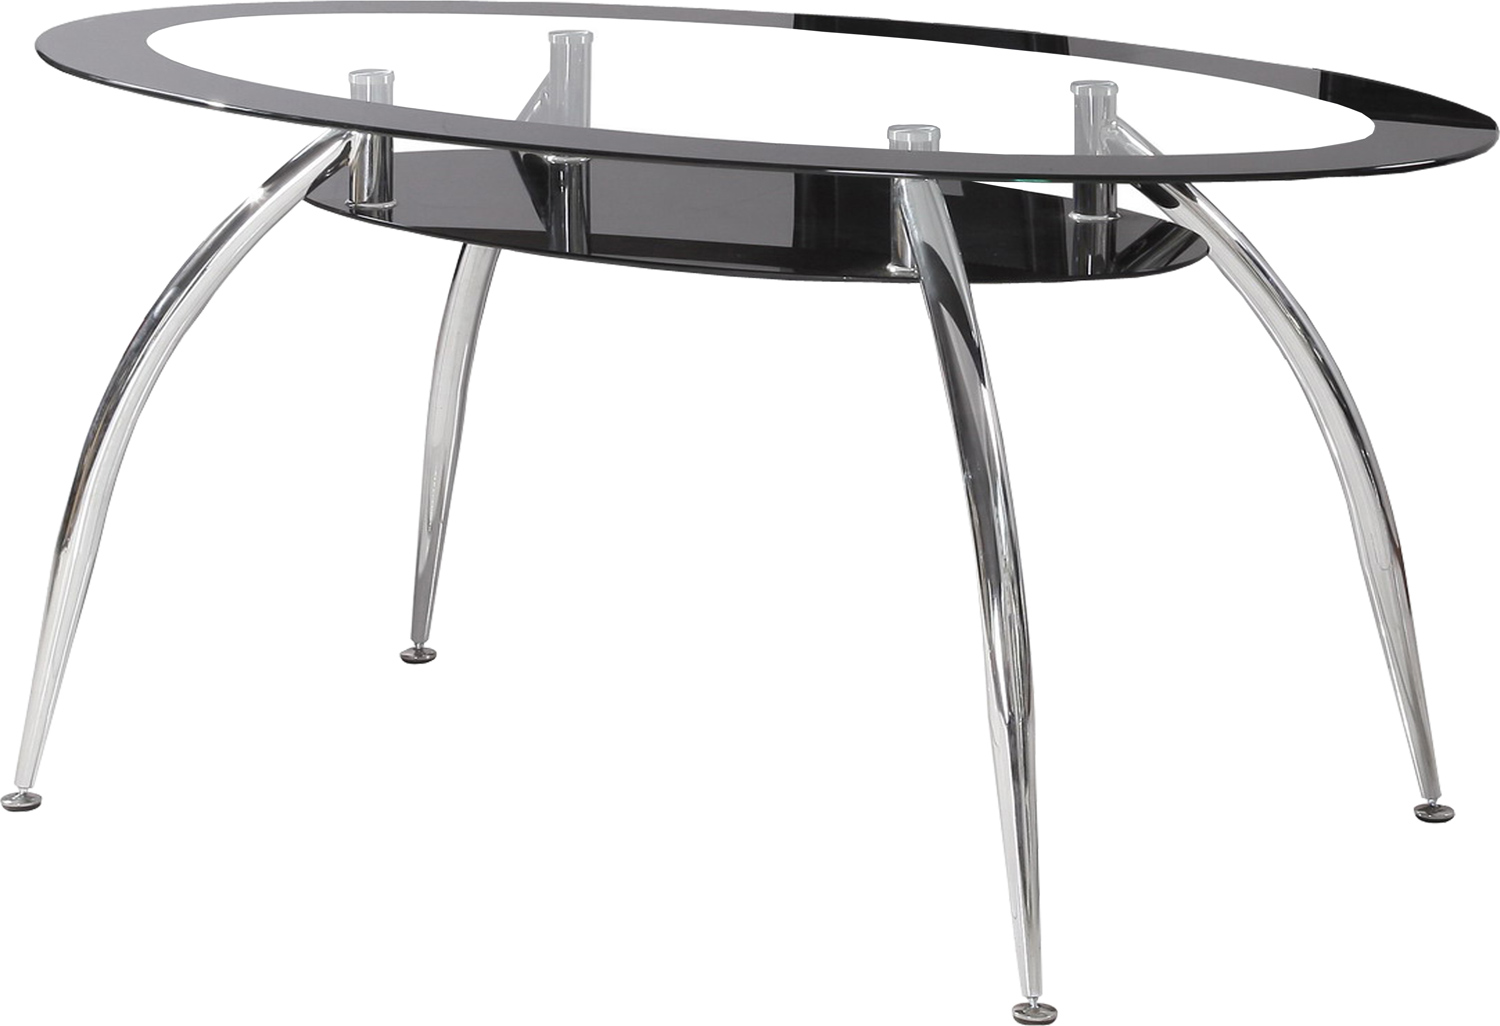 black dining room chairs with chrome legs hospital that convert to beds soho modern oval table edged glass